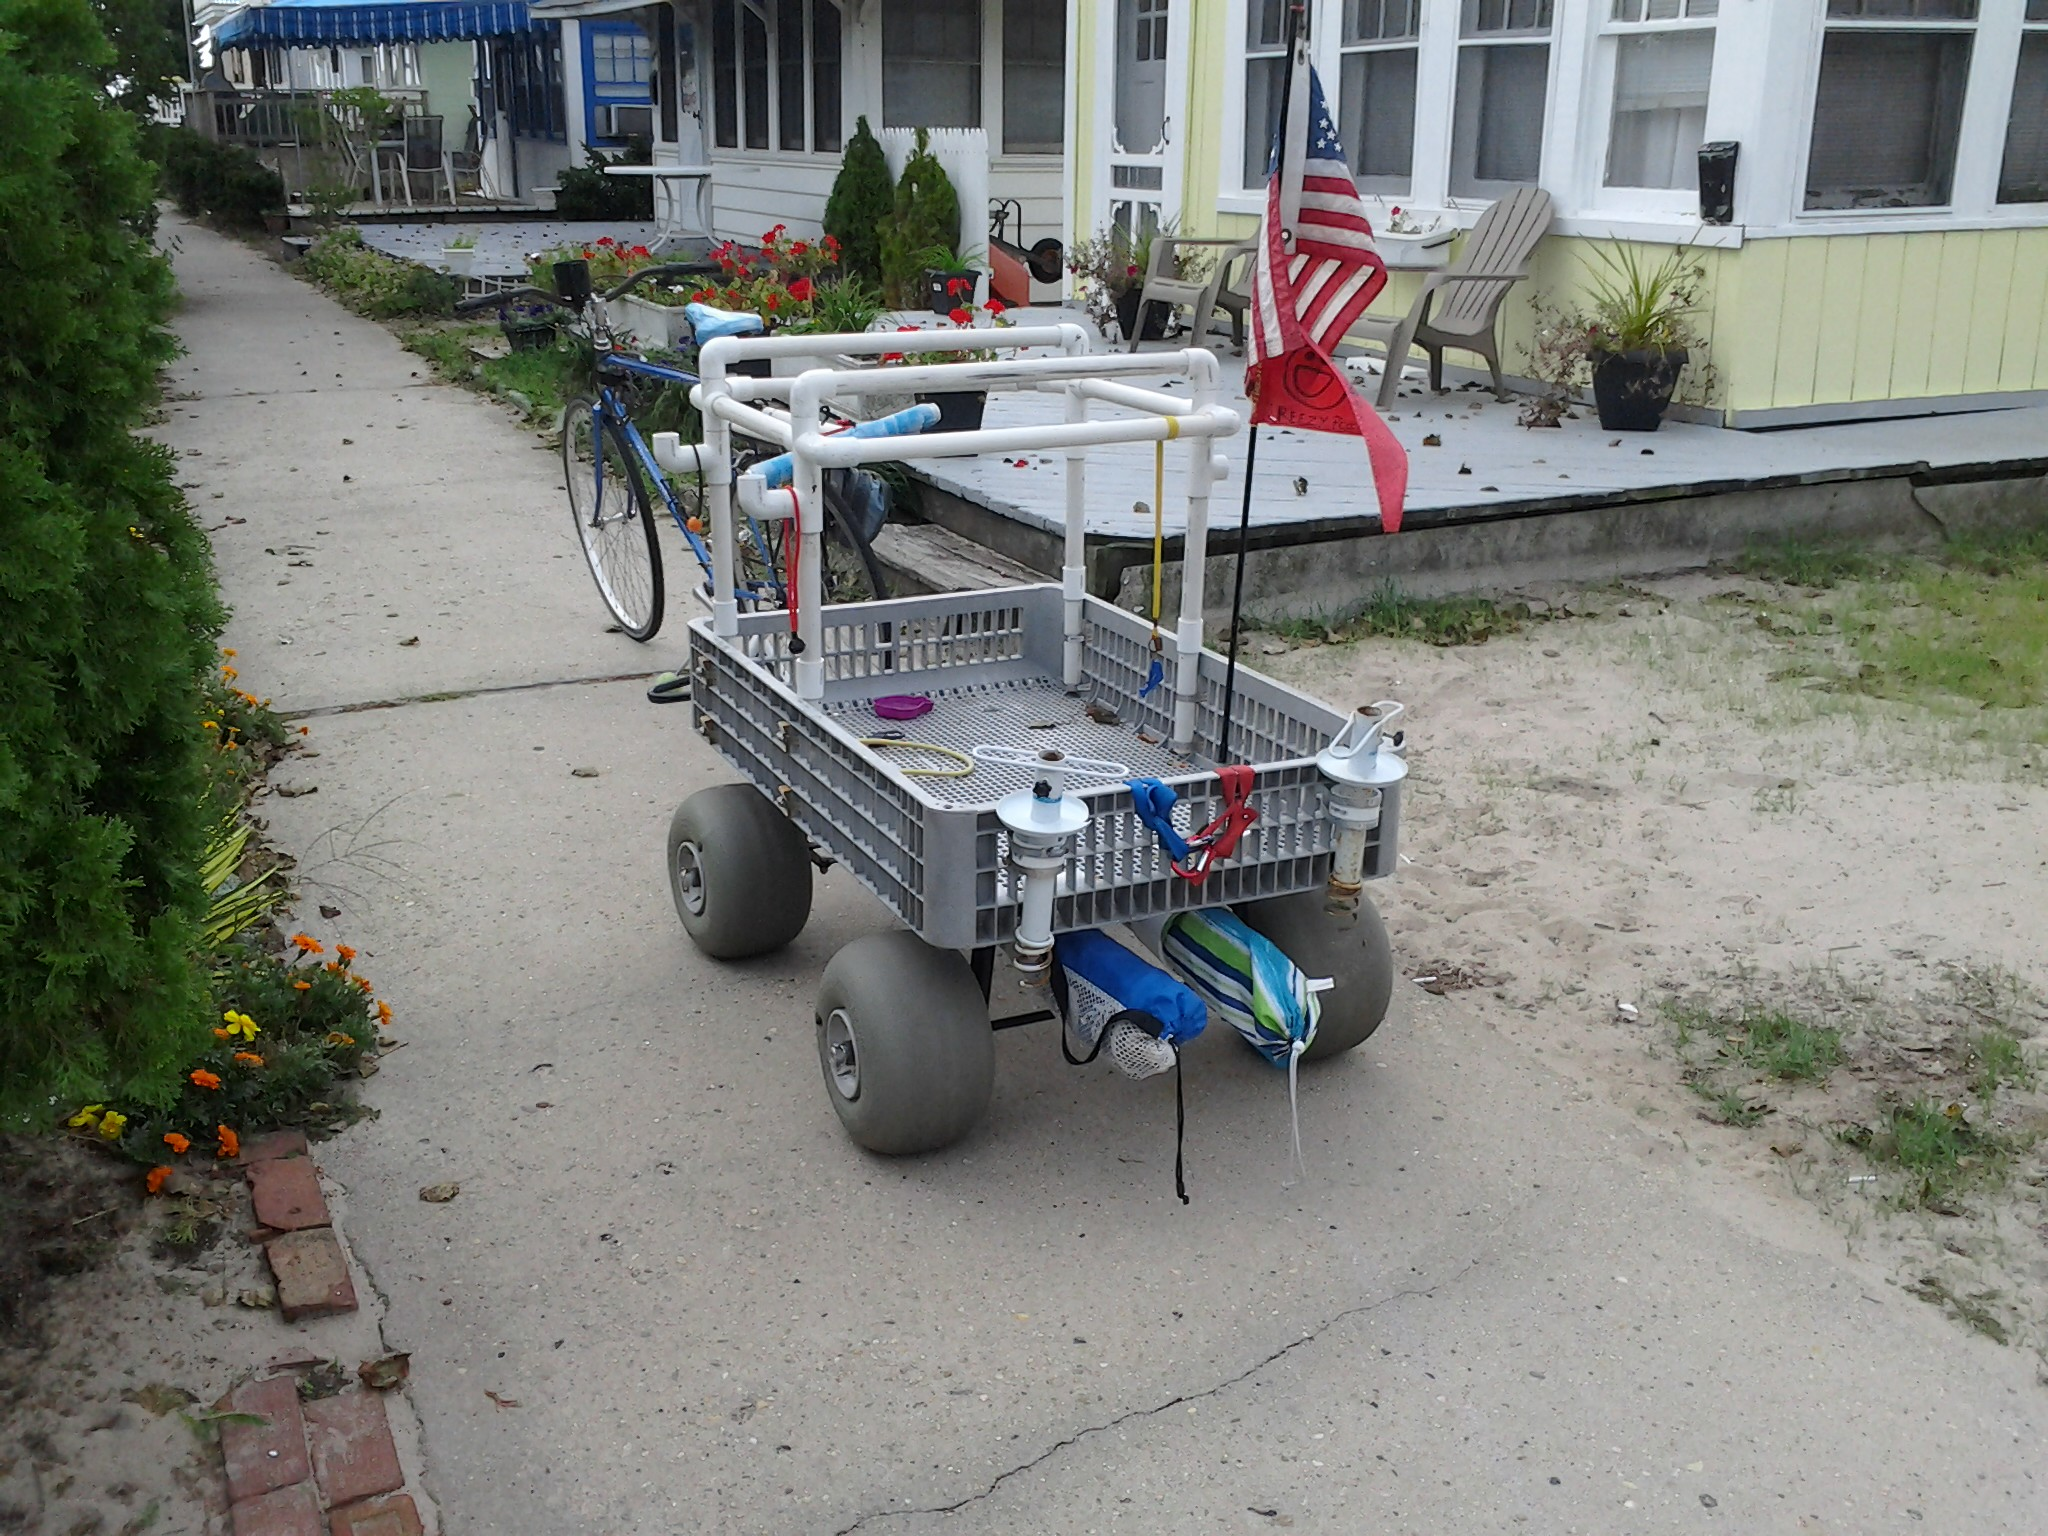 My 1st Surf Fishing Cart What Do You Guys Think